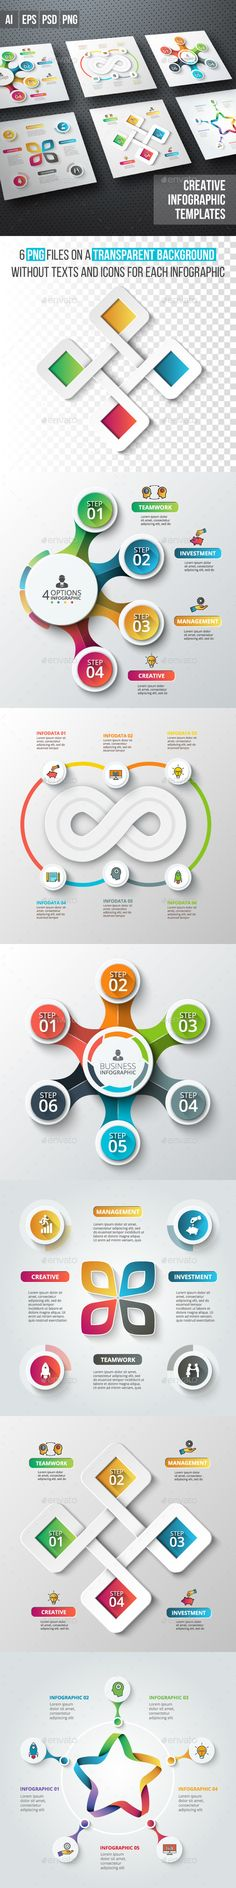 Modern infographic pack infographic photoshop and arrow business infographic diagrams templates psd vector eps ai illustrator pronofoot35fo Images